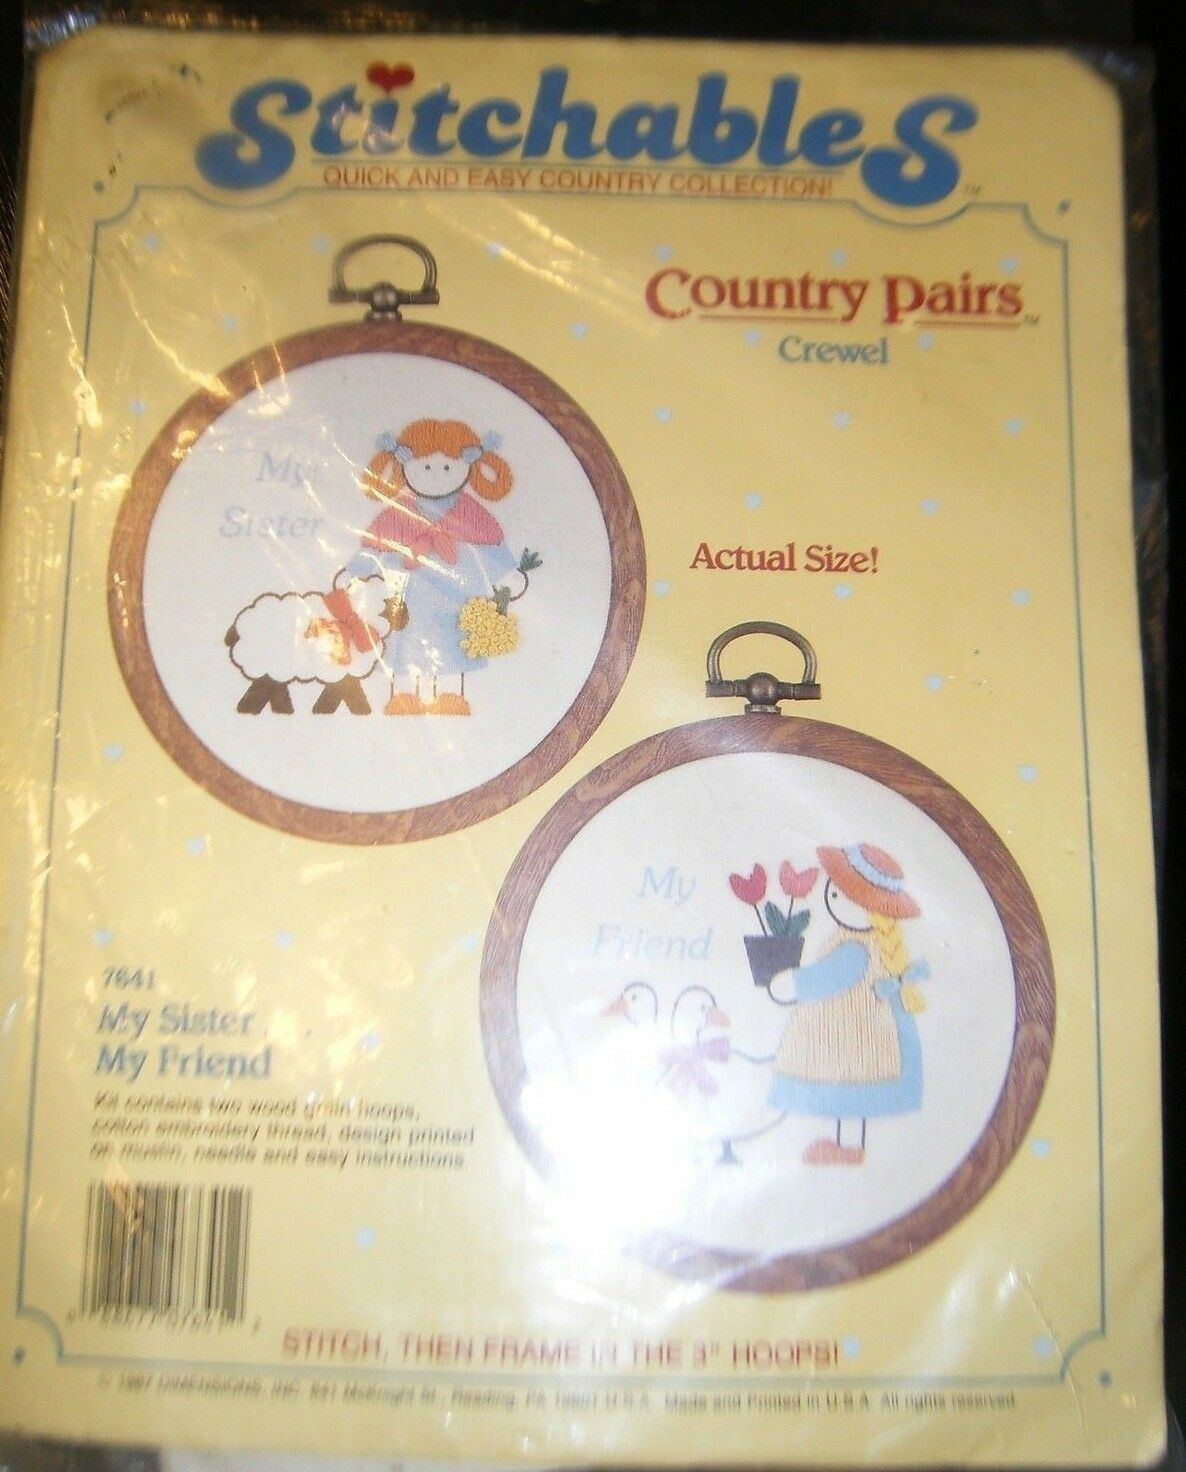 Primary image for Stitchables country pairs my sister my friend cross stitch kit 7641 new w/ hoops